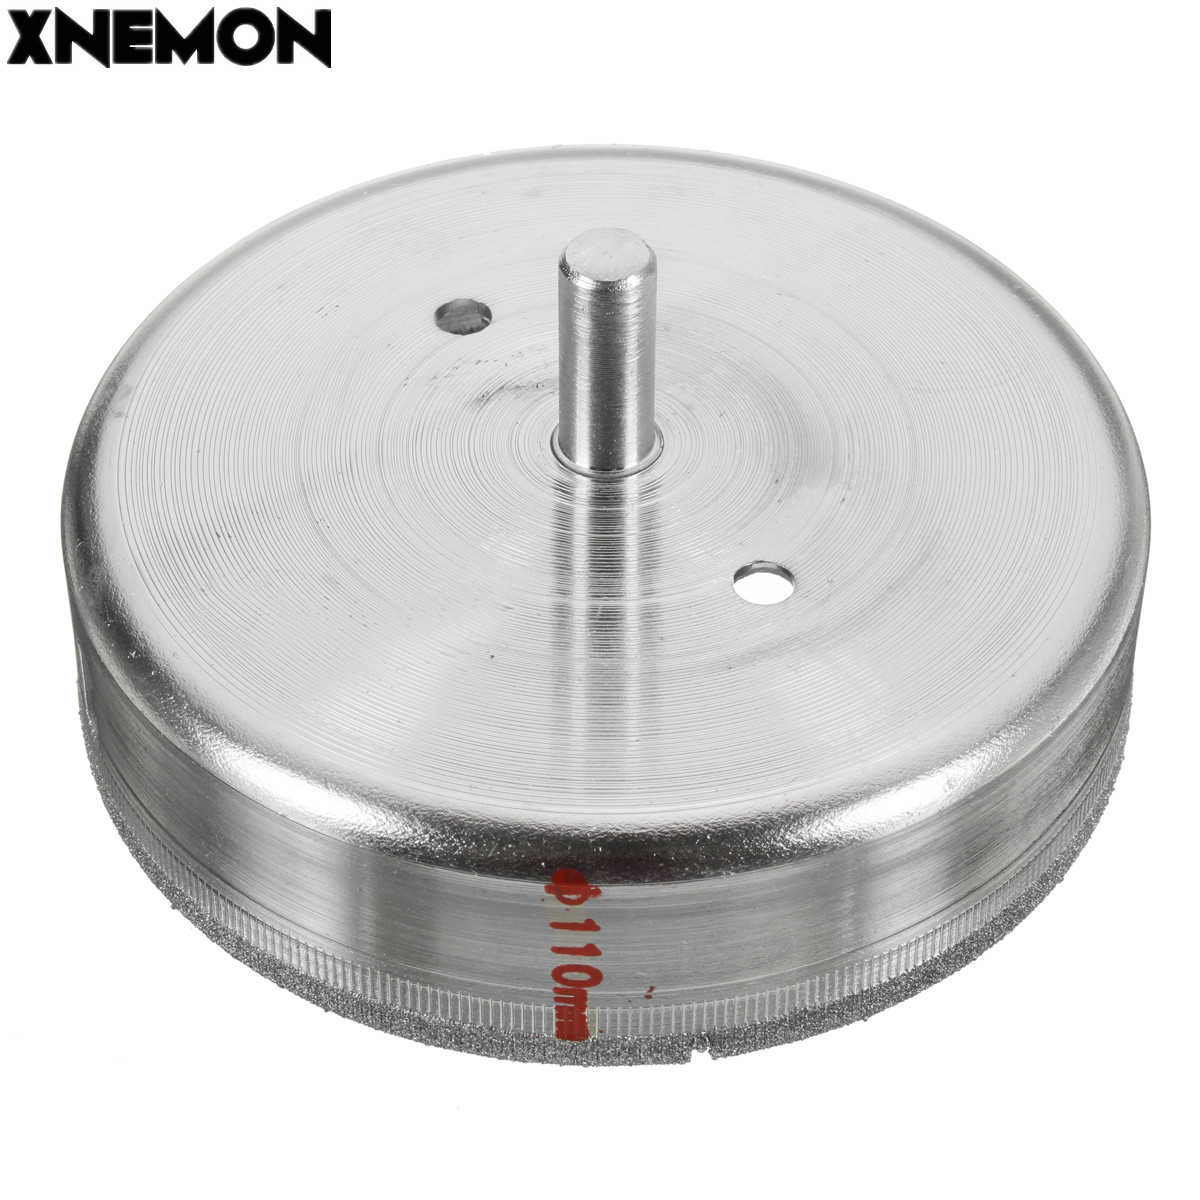 XNEMON 1PC 110mm 4 3/8'' Inch Diamond Coated Drill Bit Hole Saw Core Drills Marble Tile Suitable for Use In Drill Hole on Glass cnbtr 50mm diamond hole saw drill core bit for marble stone granit tile cutter